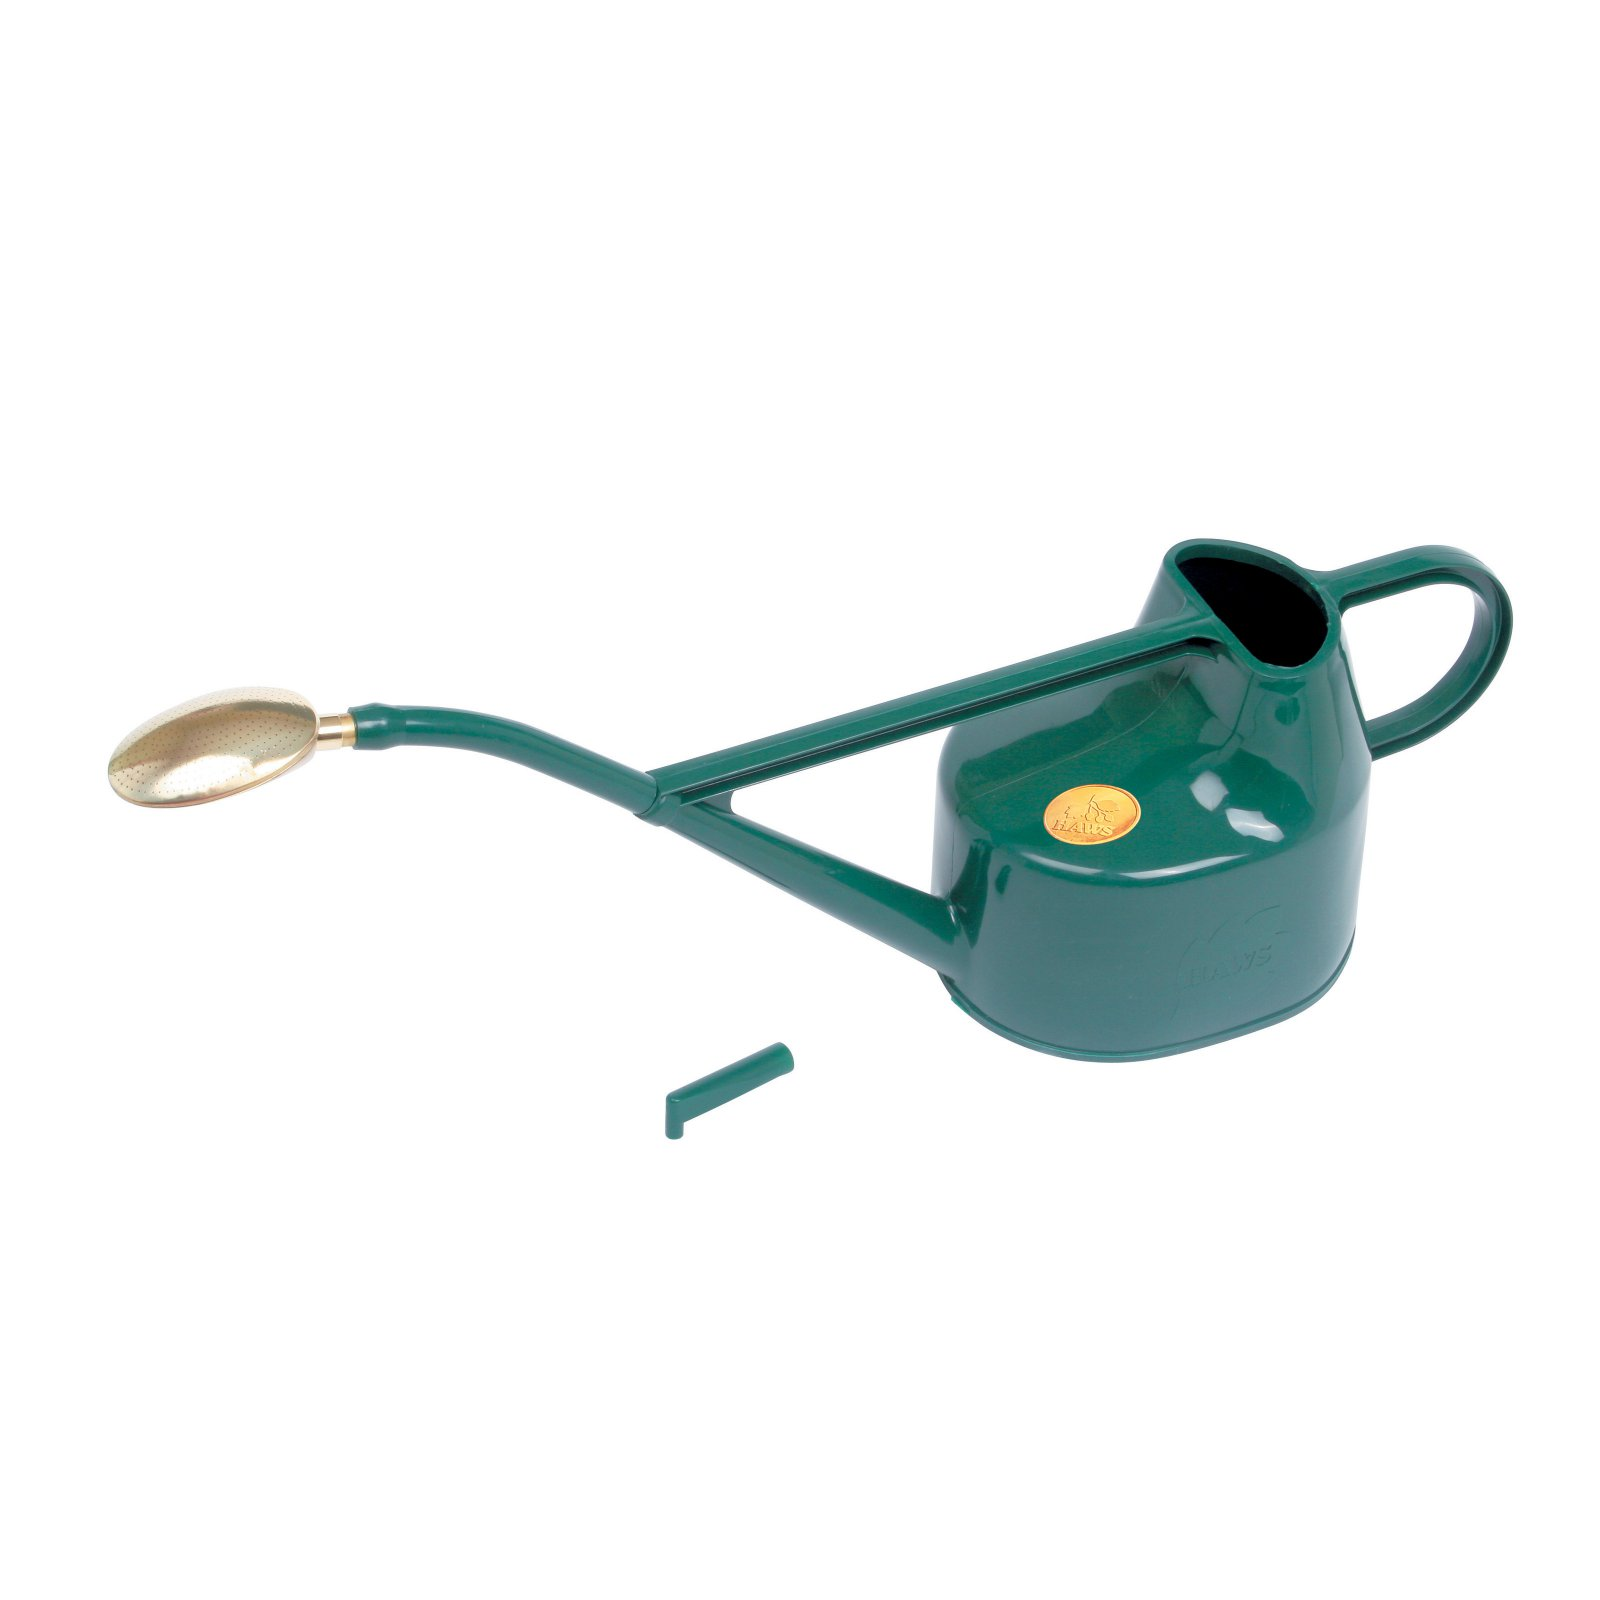 Haws 5 Liters Plastic Green Deluxe Outdoor Watering Can by Bosmere Inc